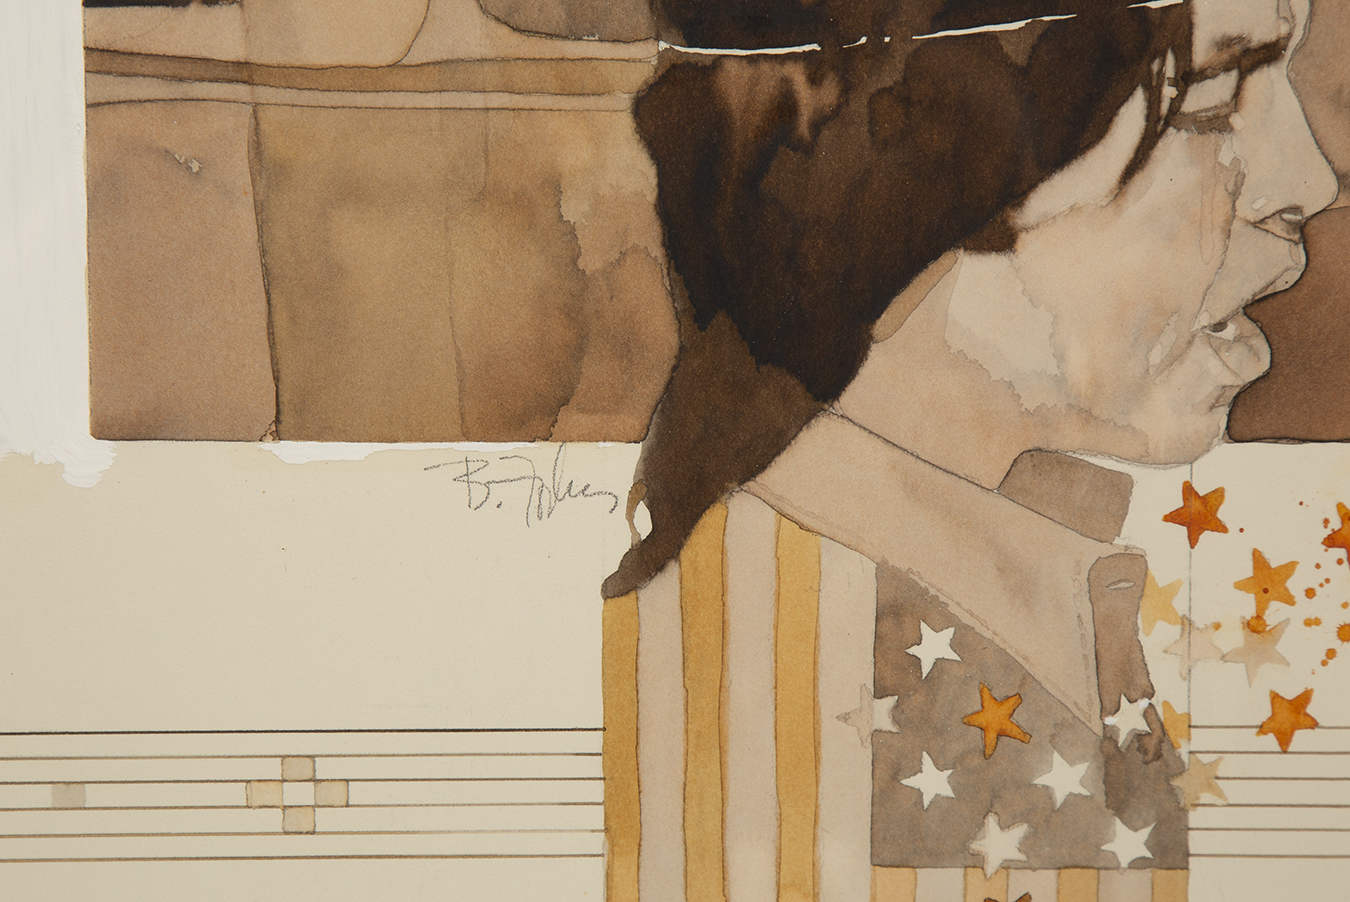 Detailed view of watercolor illustration showing the artist's signature